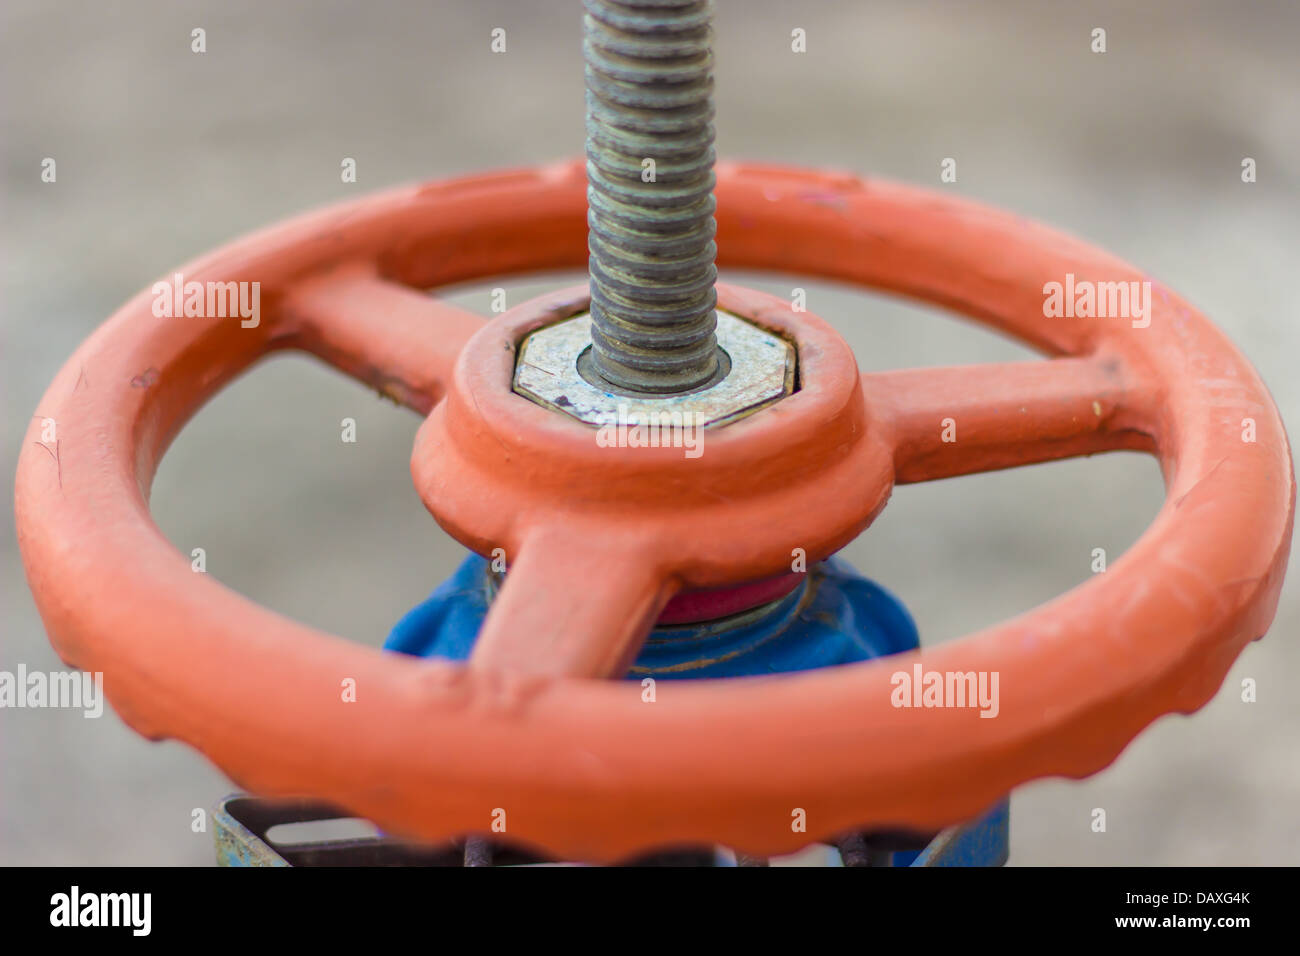 close-up red gate valve and screw - Stock Image